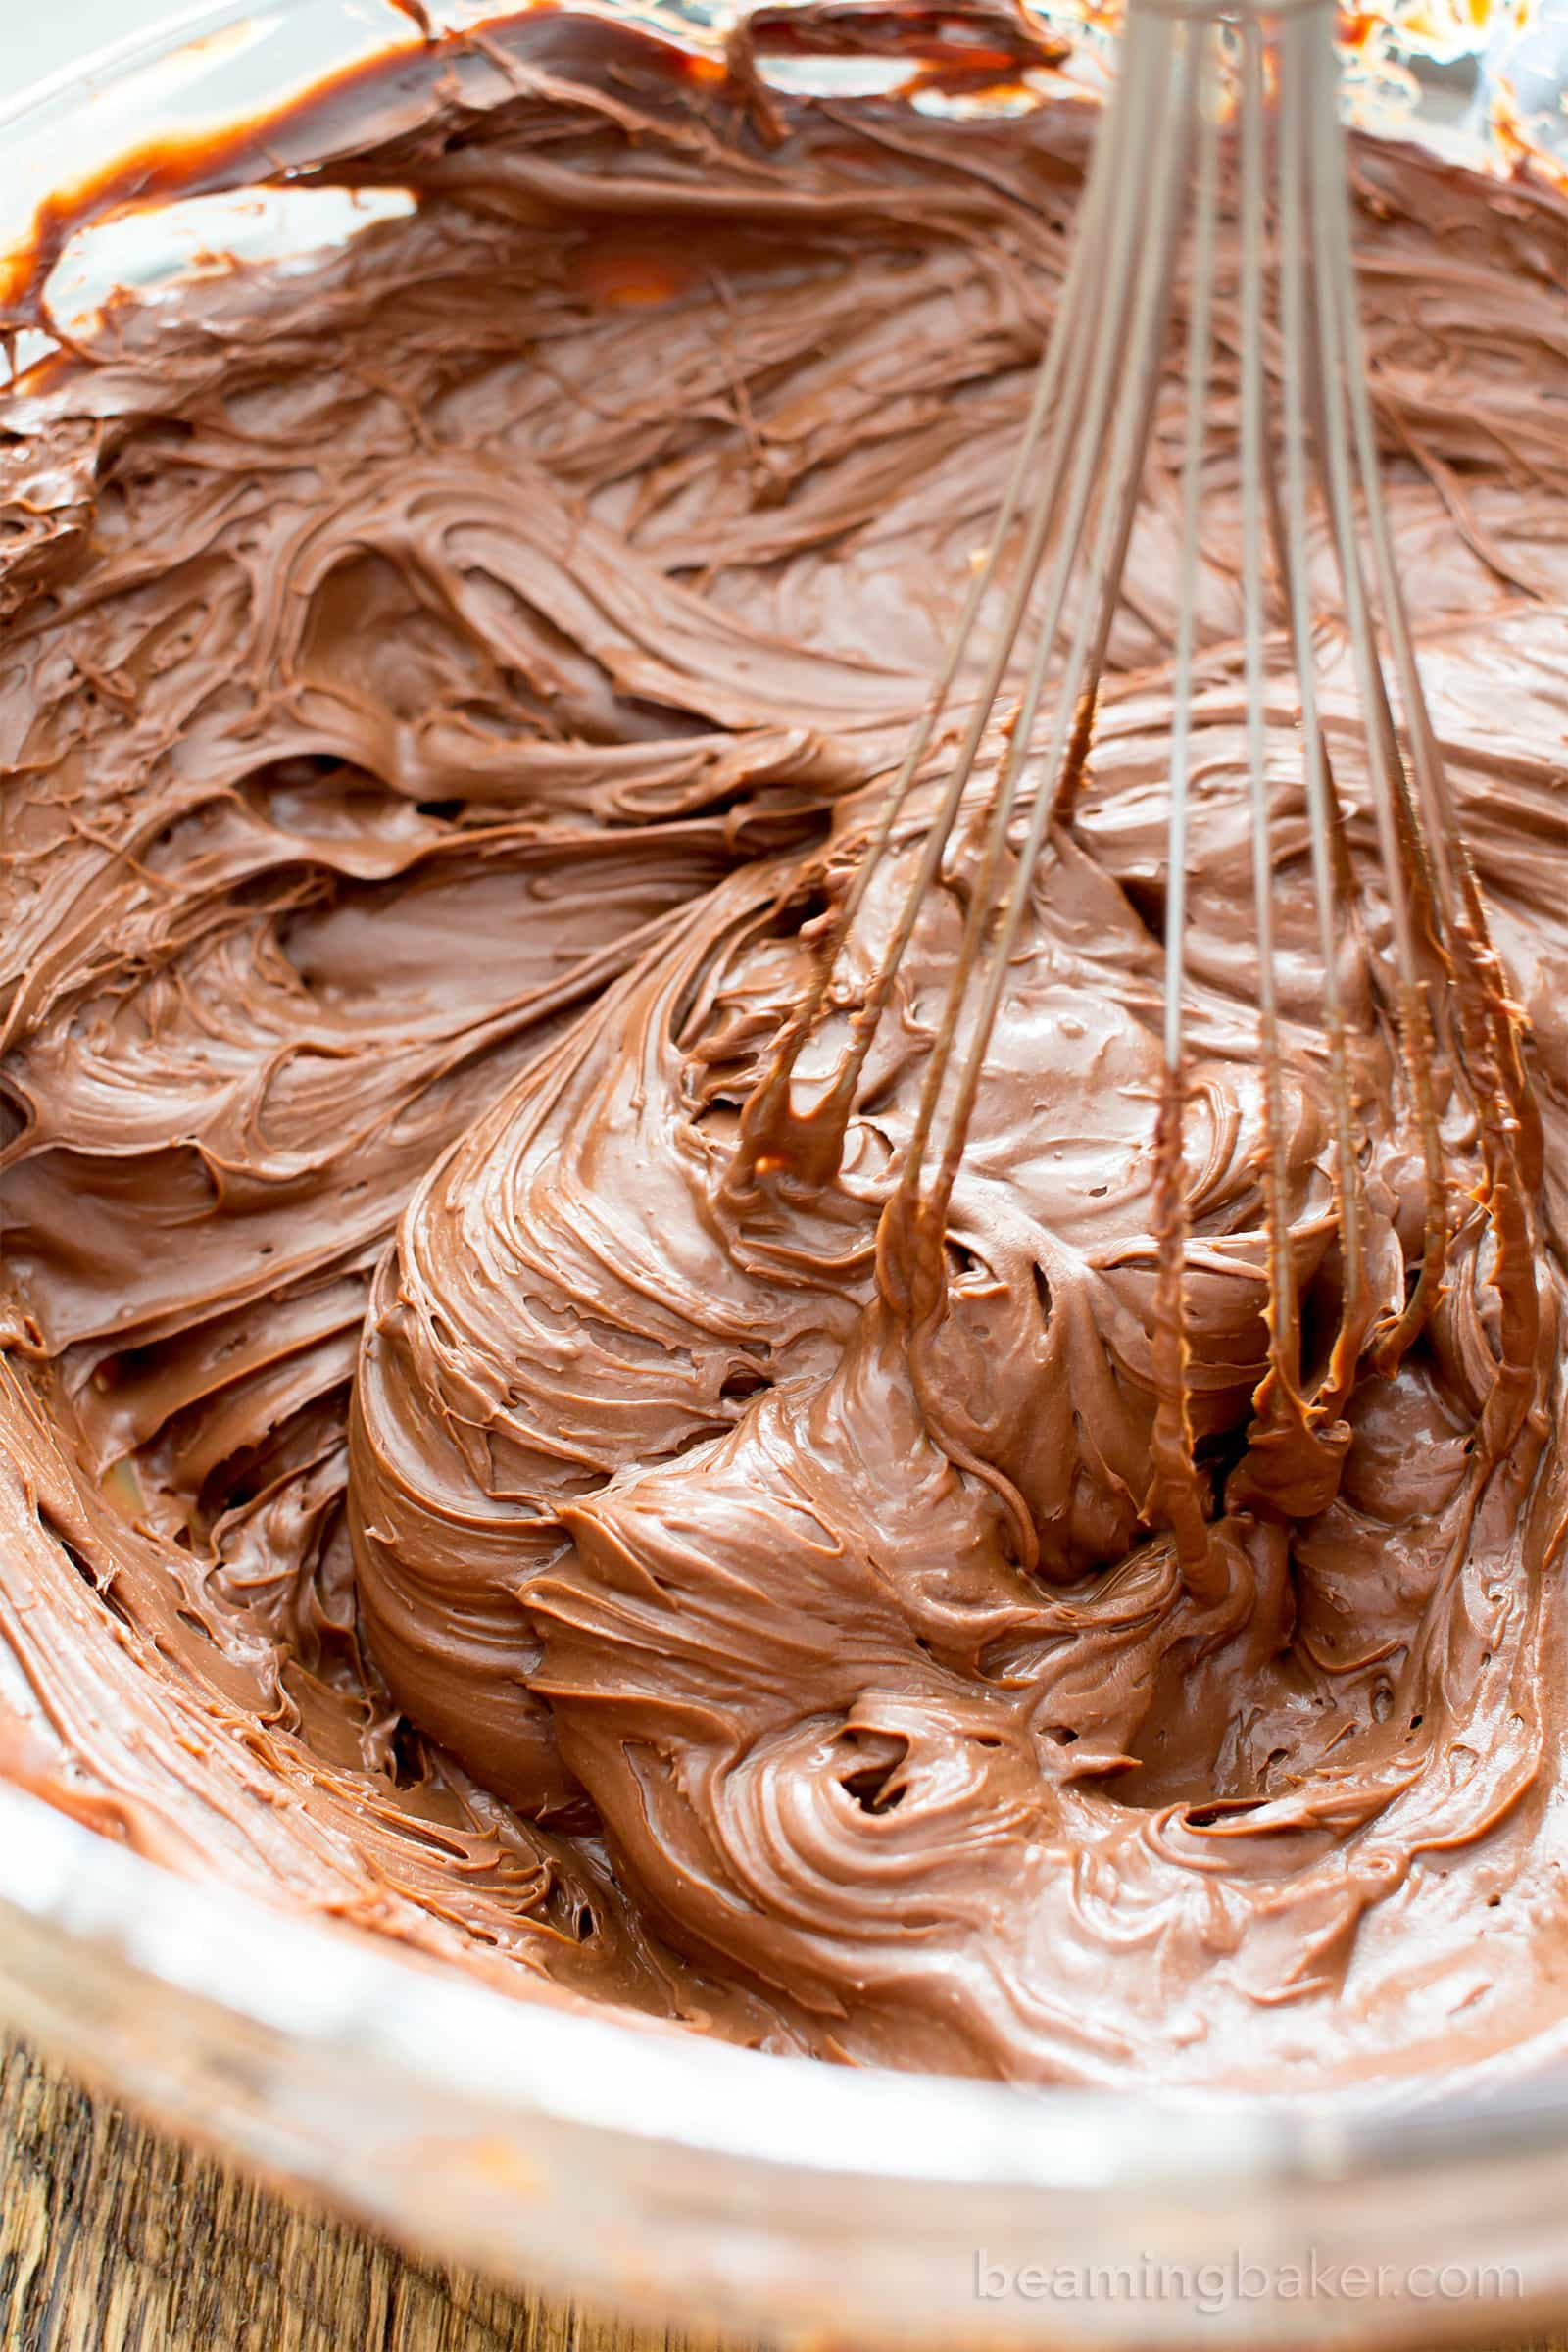 How to Make Homemade Chocolate Frosting Recipe (V, GF): learn how to make easy vegan chocolate frosting that's smooth, silky and chocolatey. Whipped frosting doesn't require refrigeration! #Vegan #Paleo #HealthyDesserts #DairyFree #GlutenFree | Recipe on BeamingBaker.com